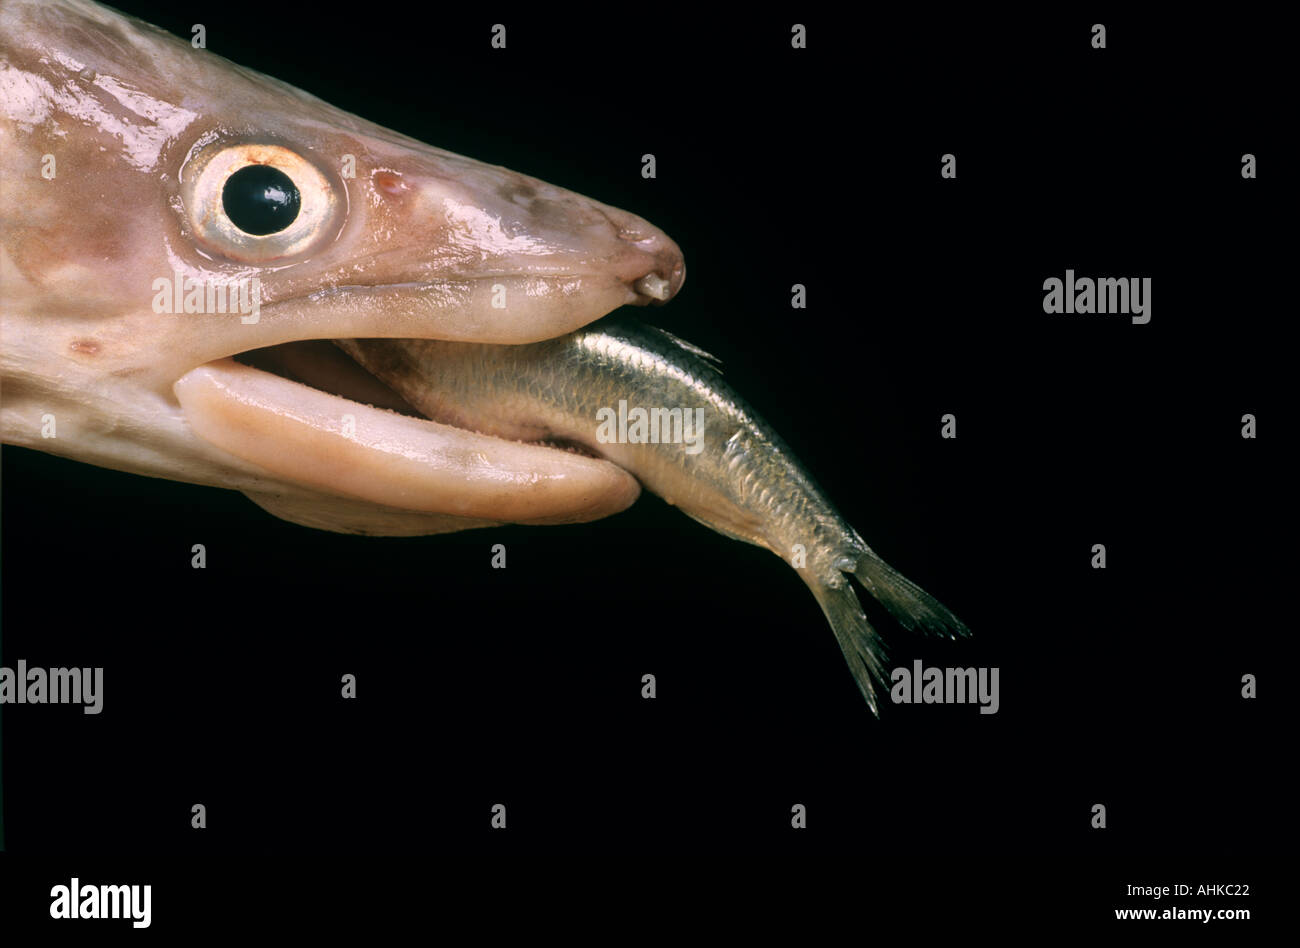 Big fish eating little fish stock photo 2685985 alamy for What can fish eat